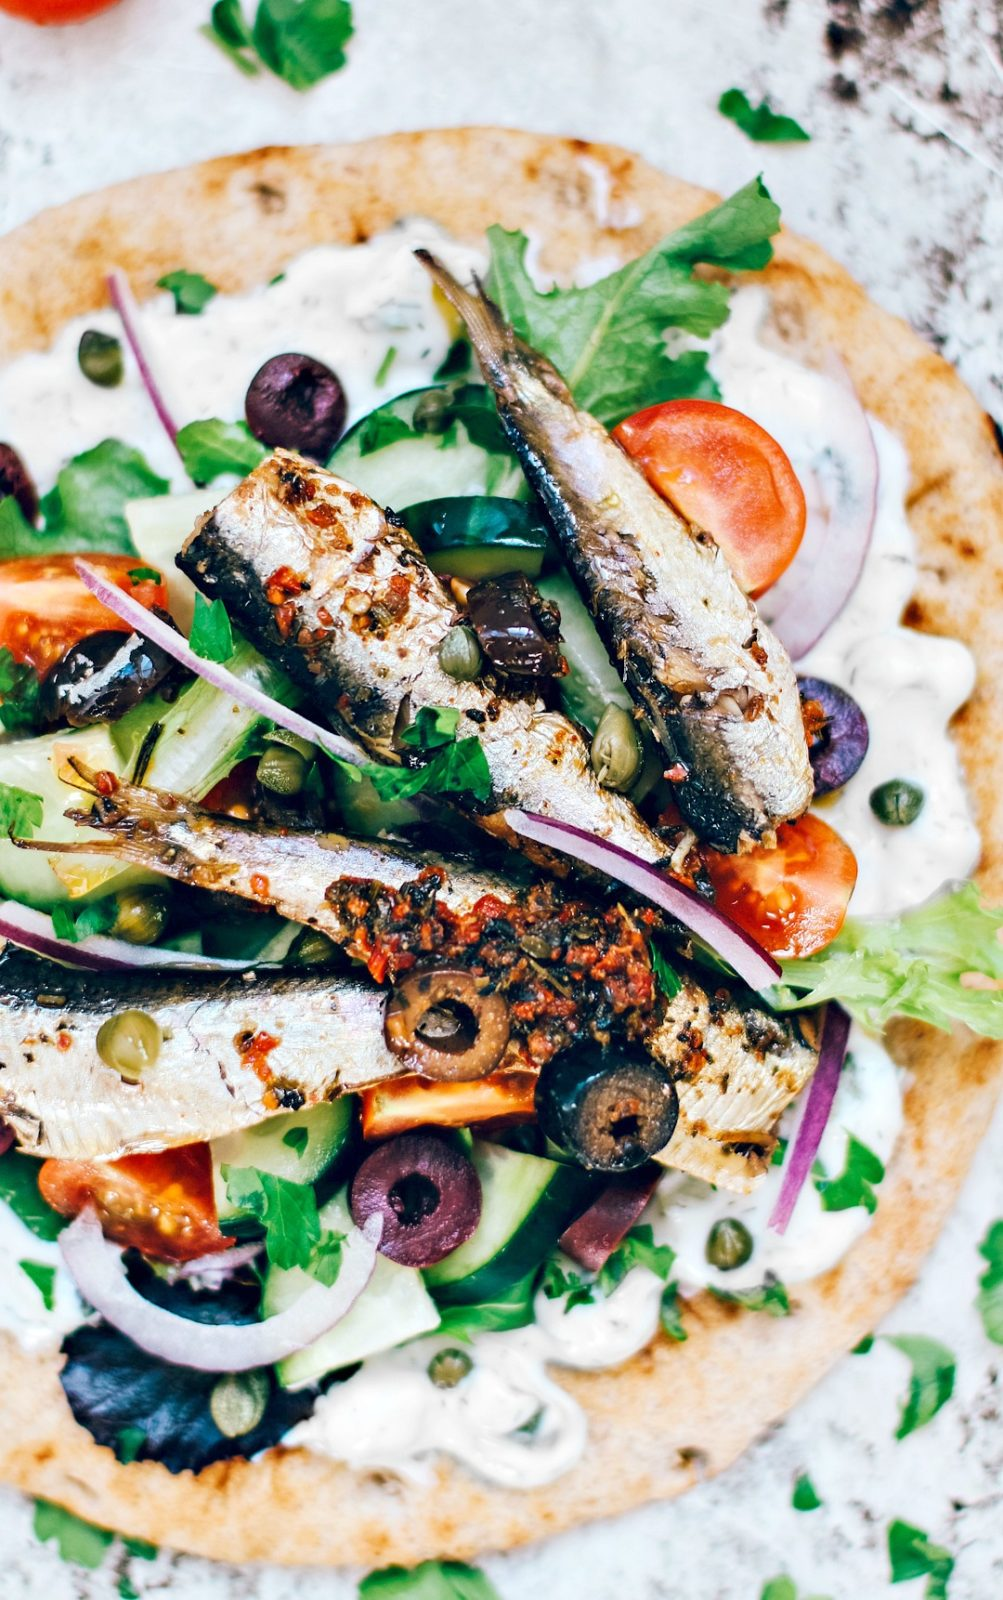 Pita topped with tzatziki, fresh veggies, and Mediterranean sardines.